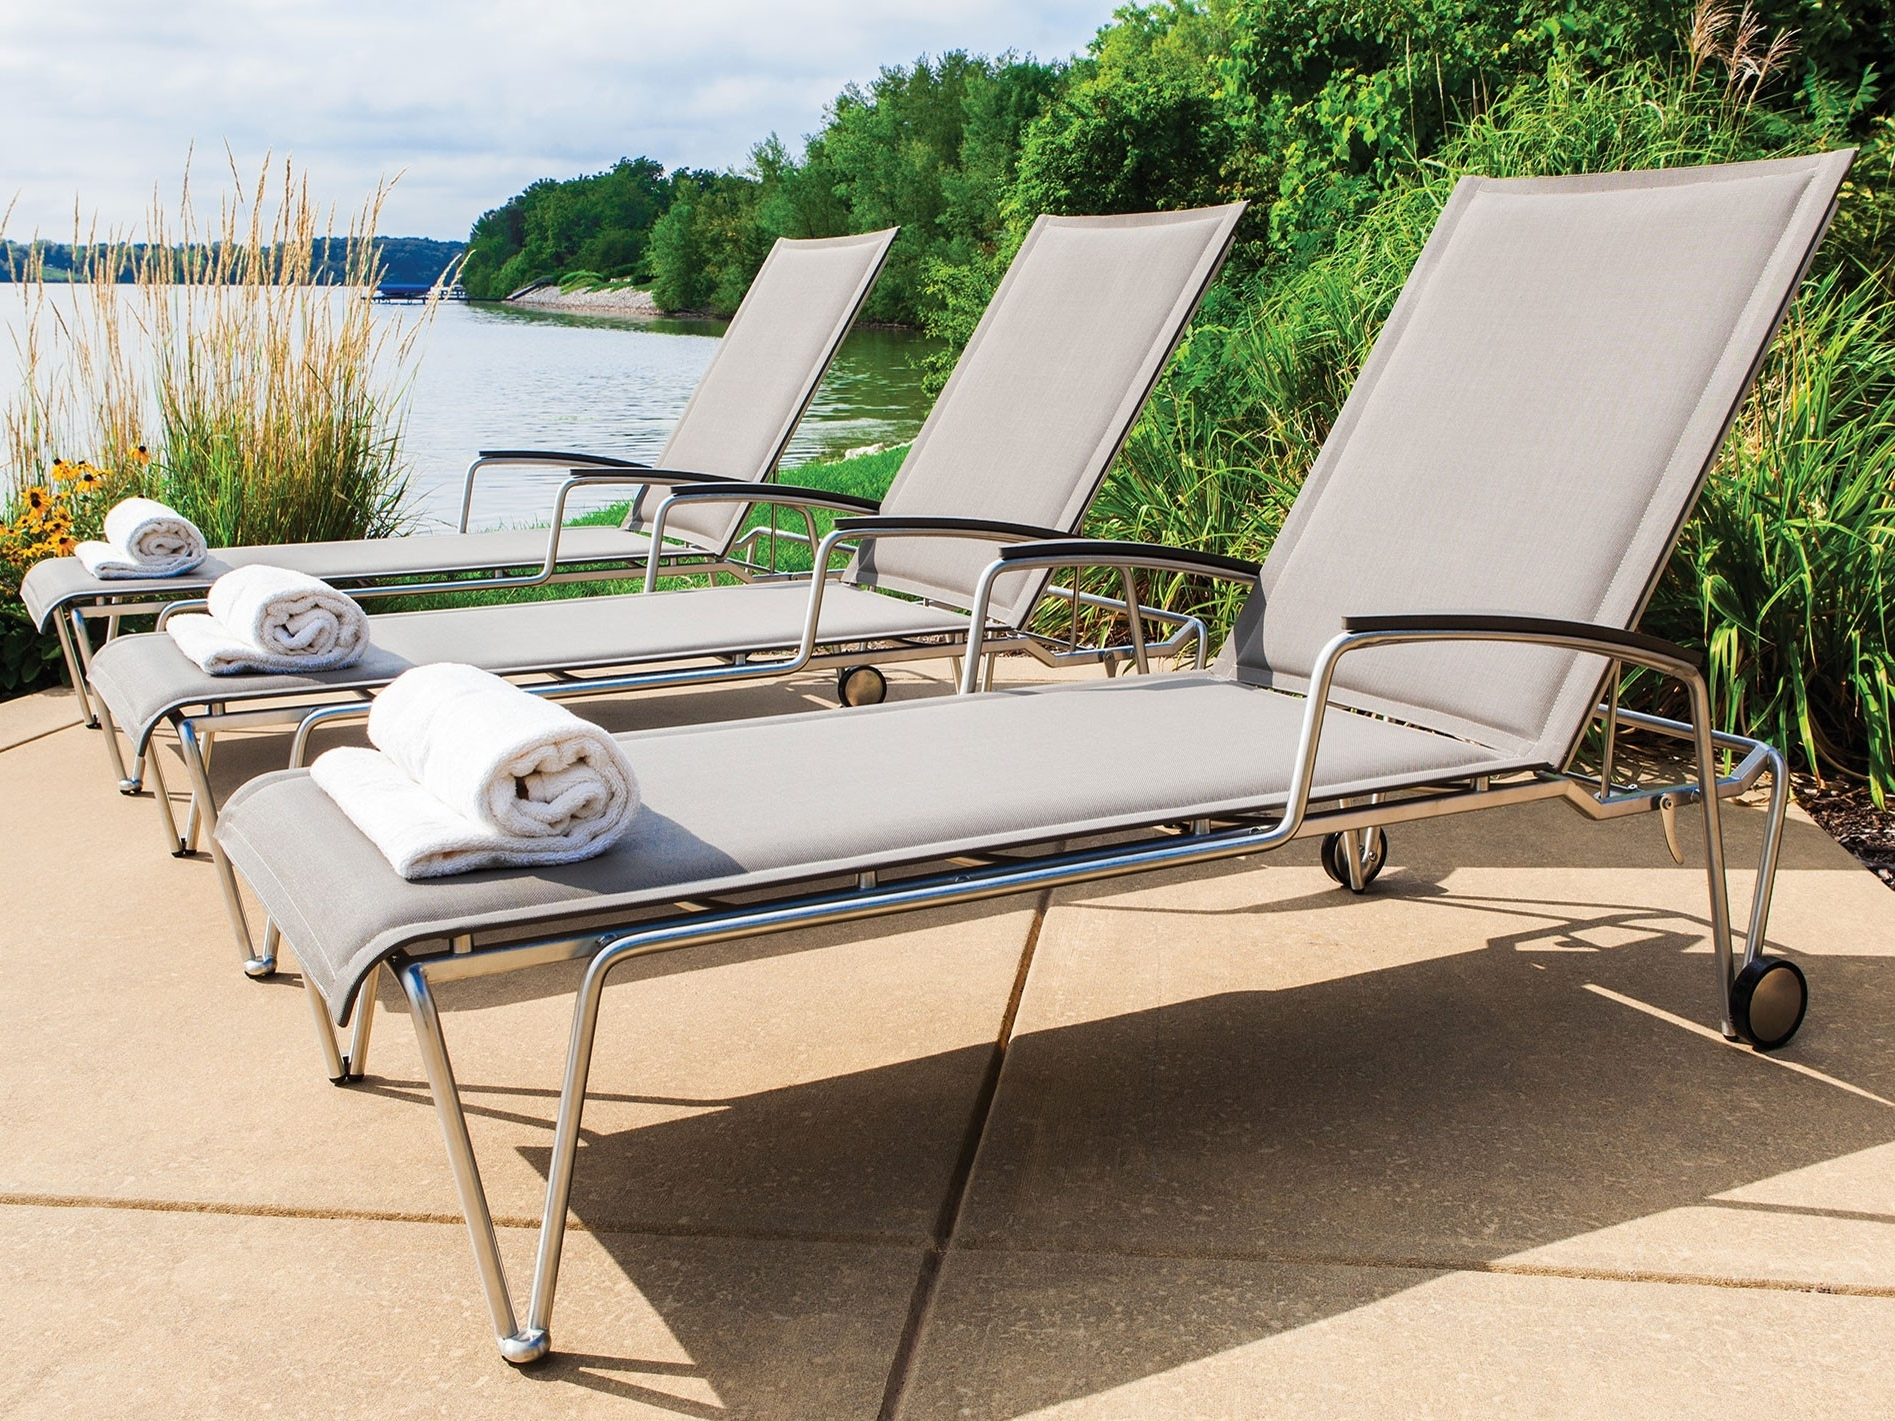 Favorite Pool Chaises With New Pool Chaise Lounge — Stereomiami Architechture : Make A Pool (View 3 of 15)